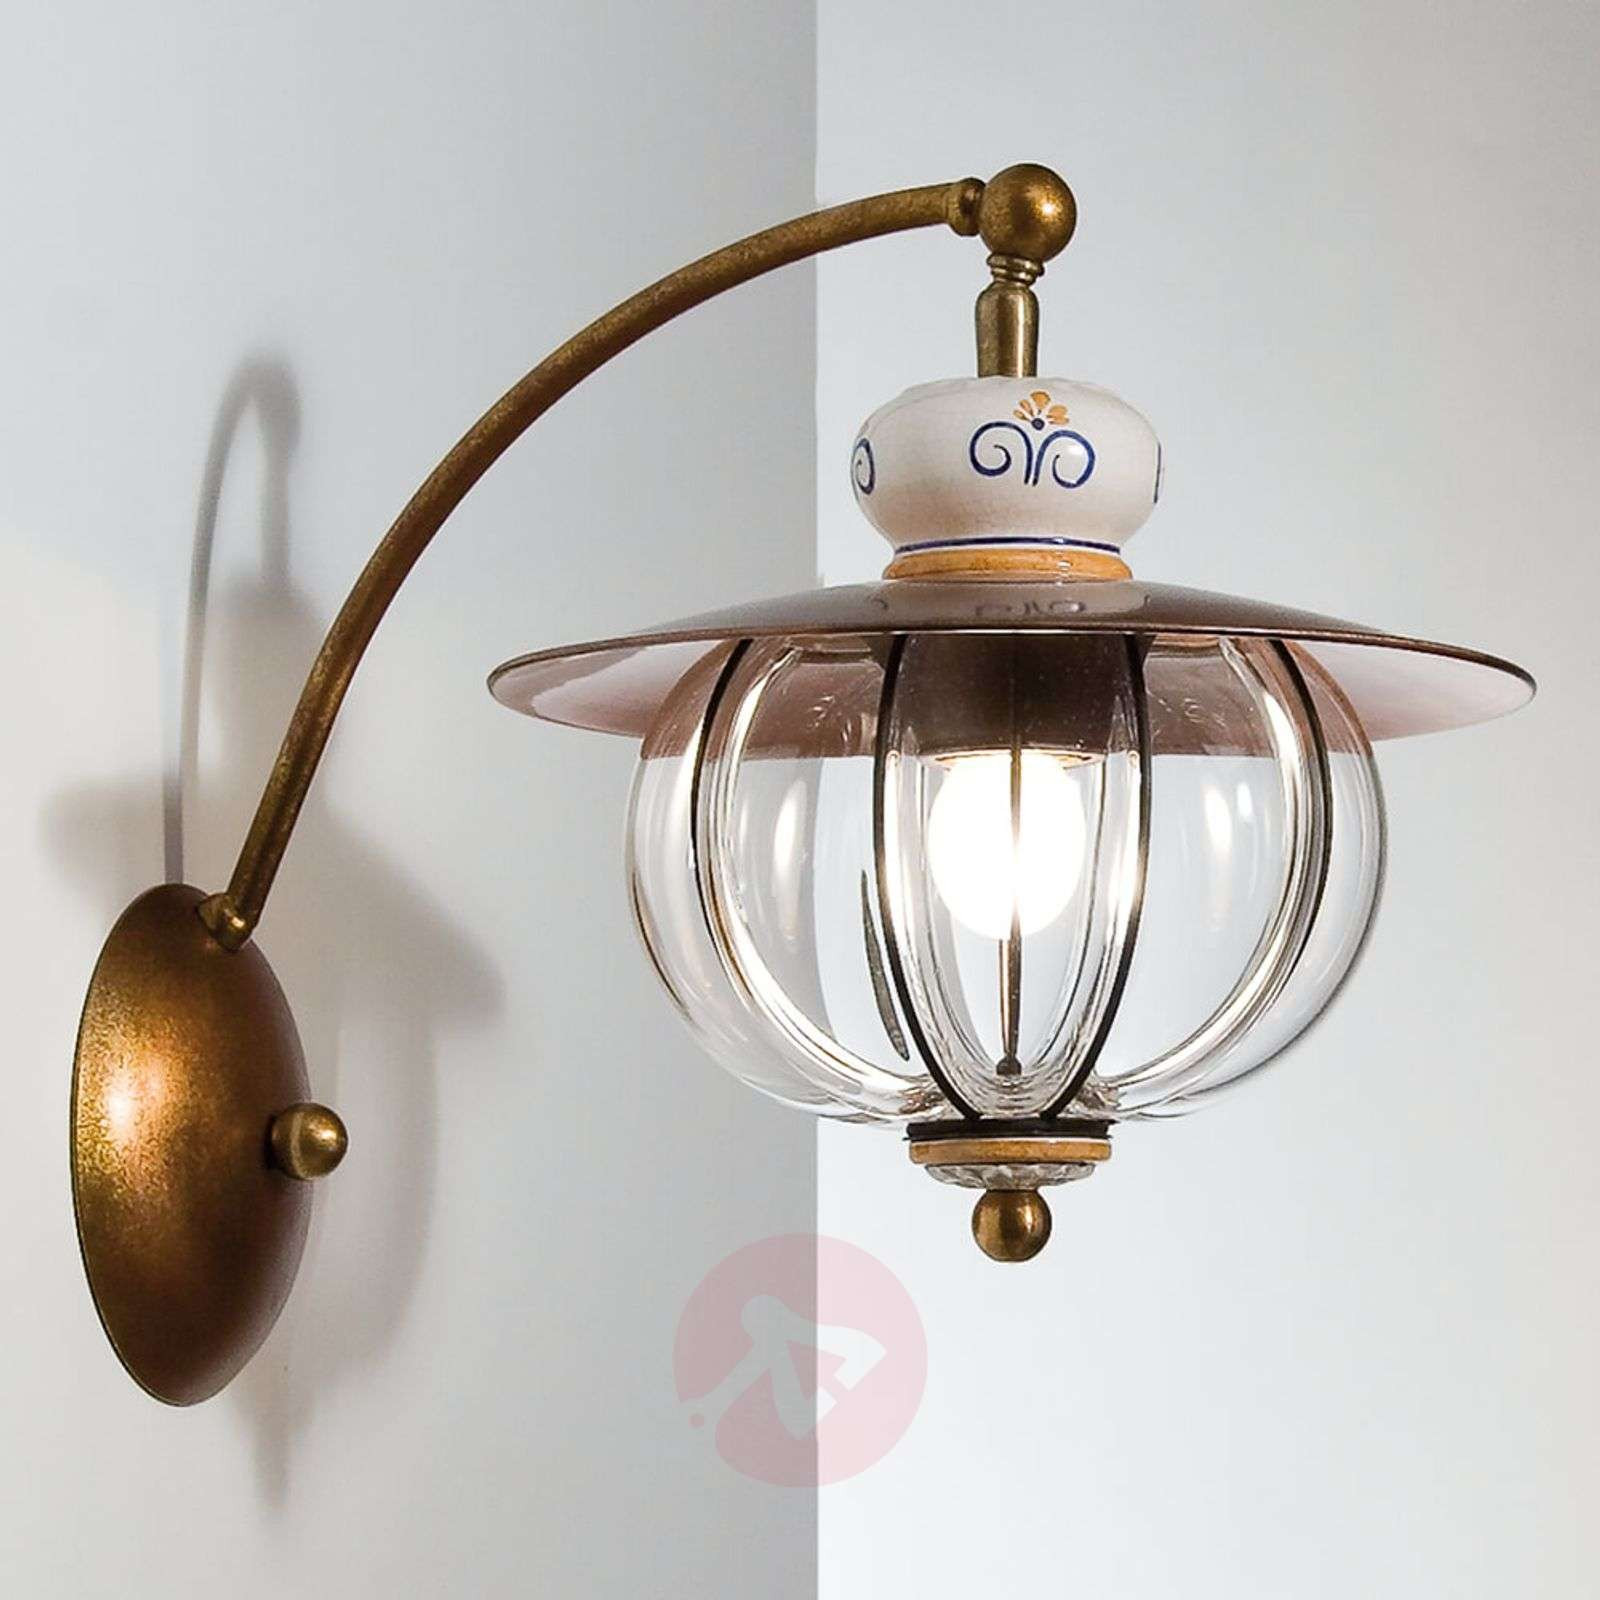 Modern lighting lamps. Kind view of lampata 29